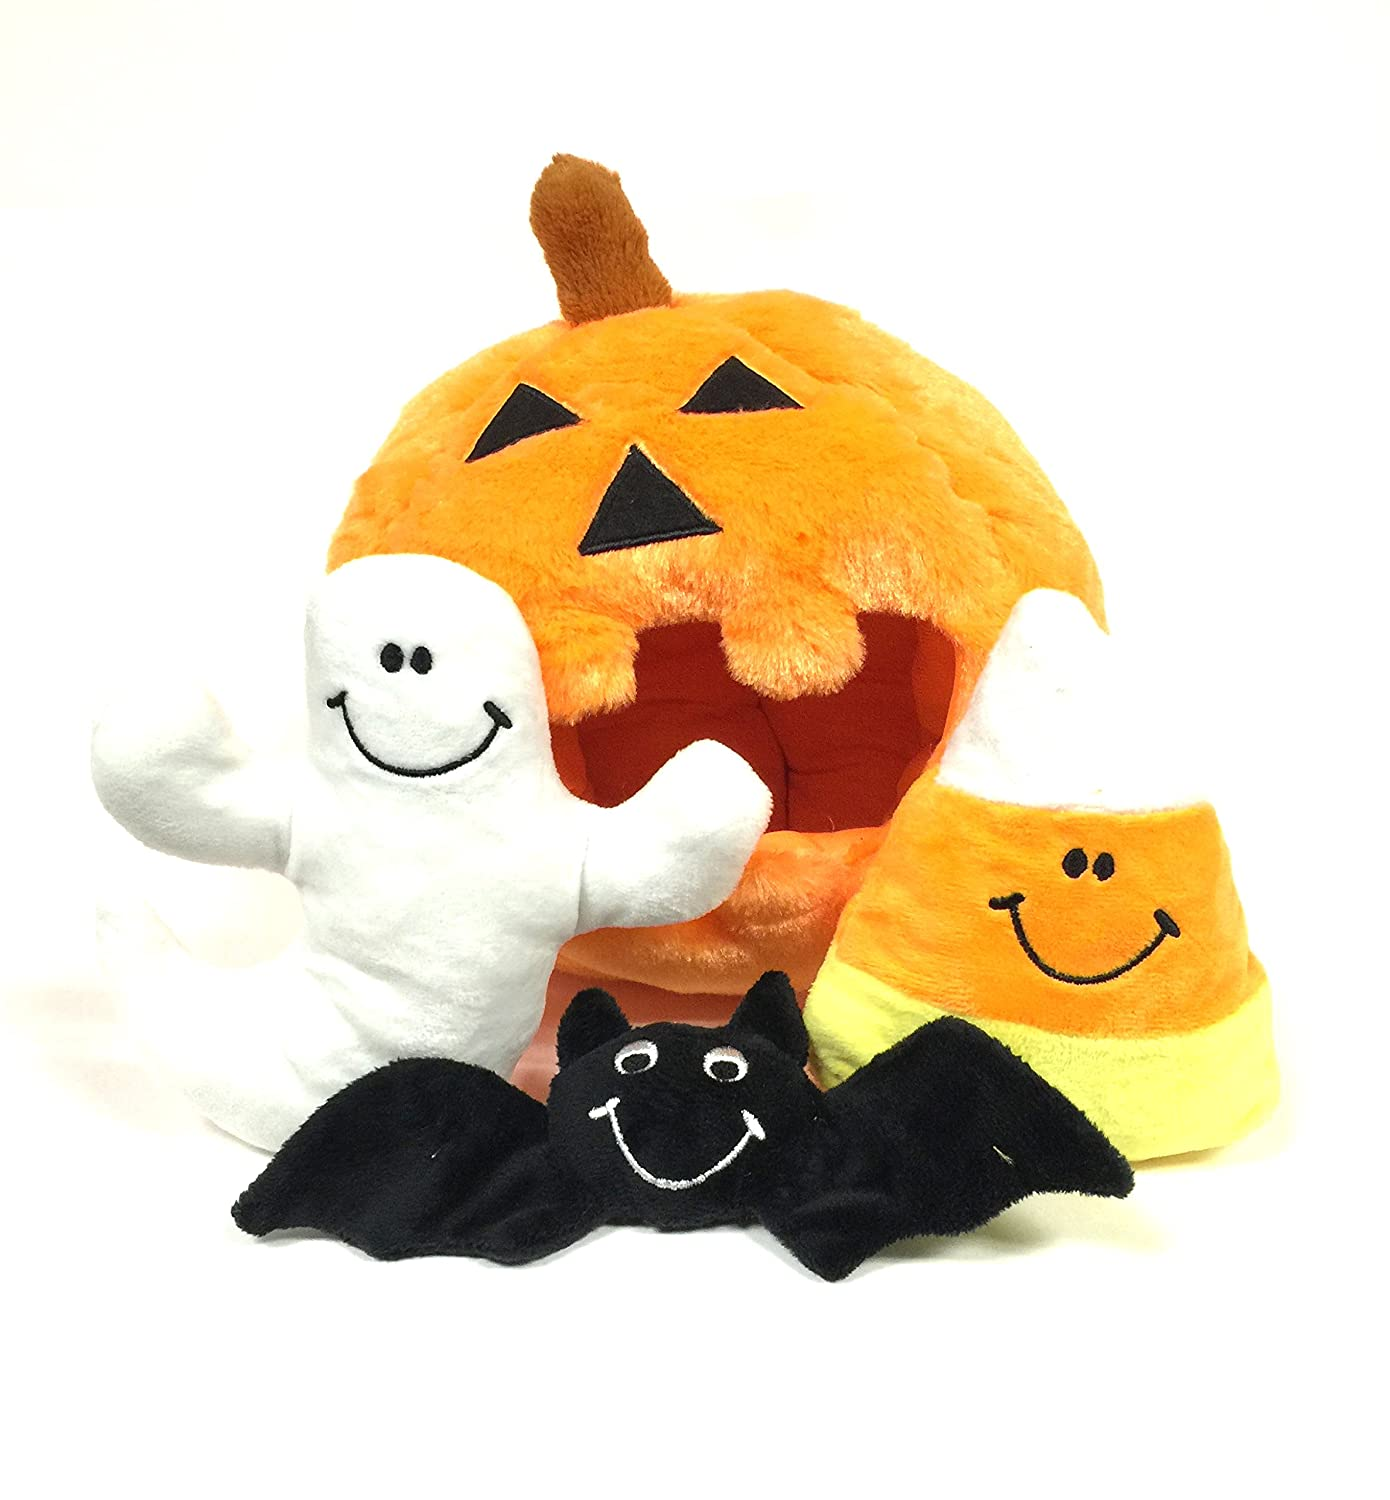 Pet Supplies Pumpkin Find a Toy Halloween Dog Toy by Midlee